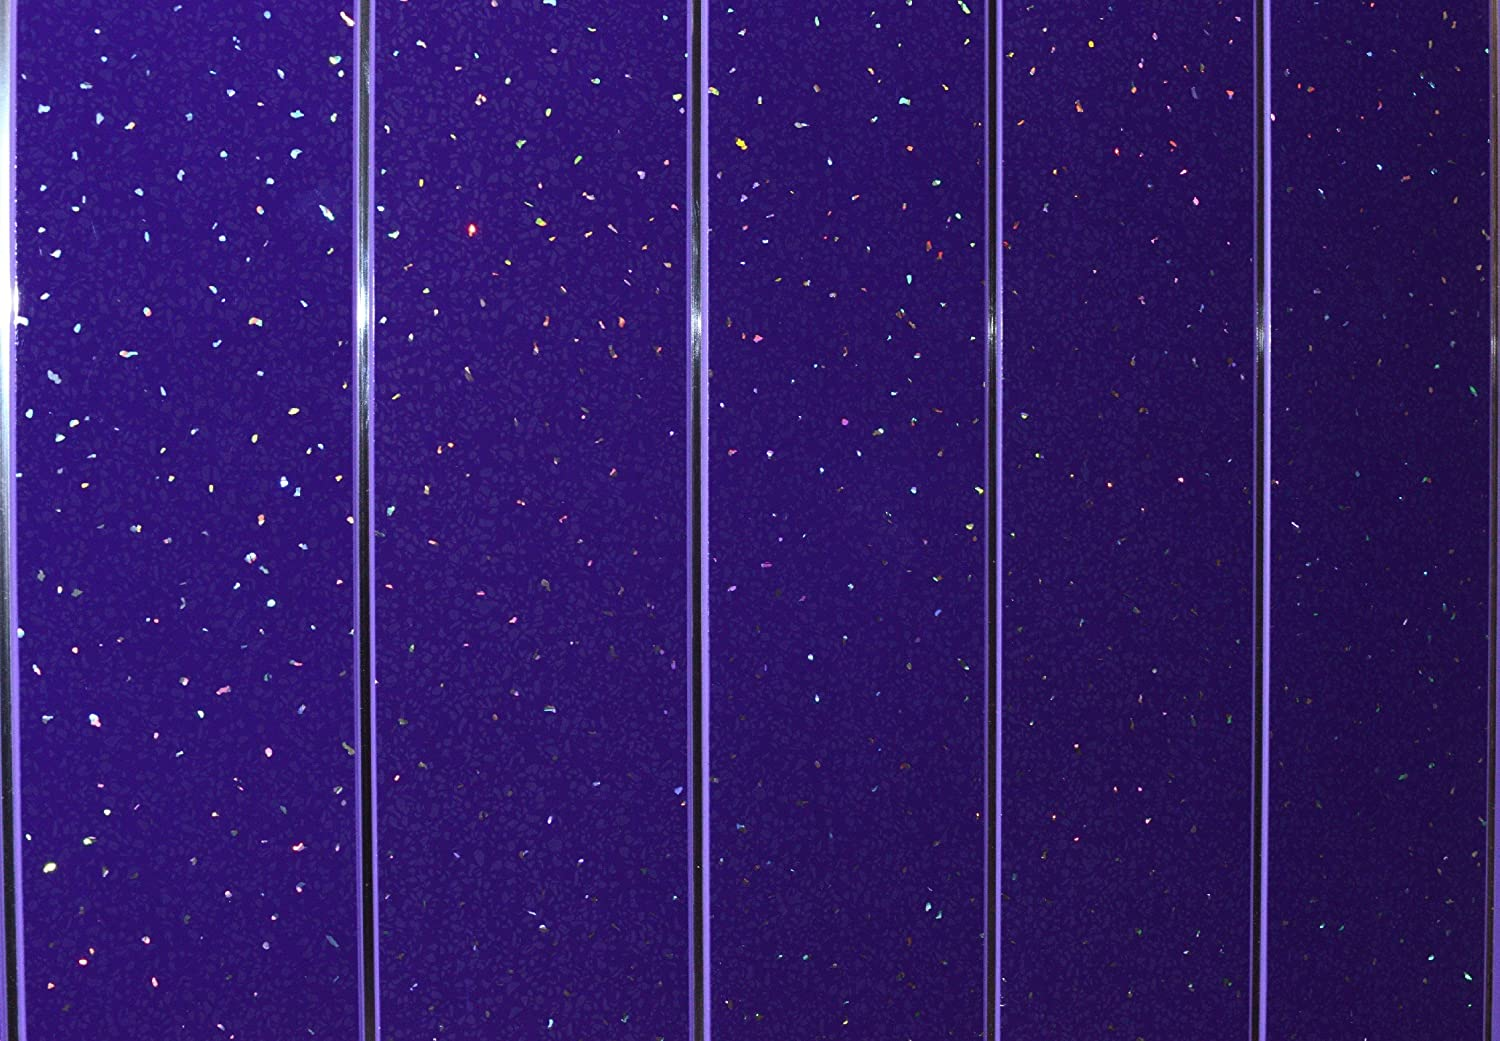 Claddtech Bathroom Wall Panels splashbacks Purple Sparkle with Chrome Perfect for Wet Walls in Shower, PVC Plastic 100% Waterproof by (15 Panels splashbacks)